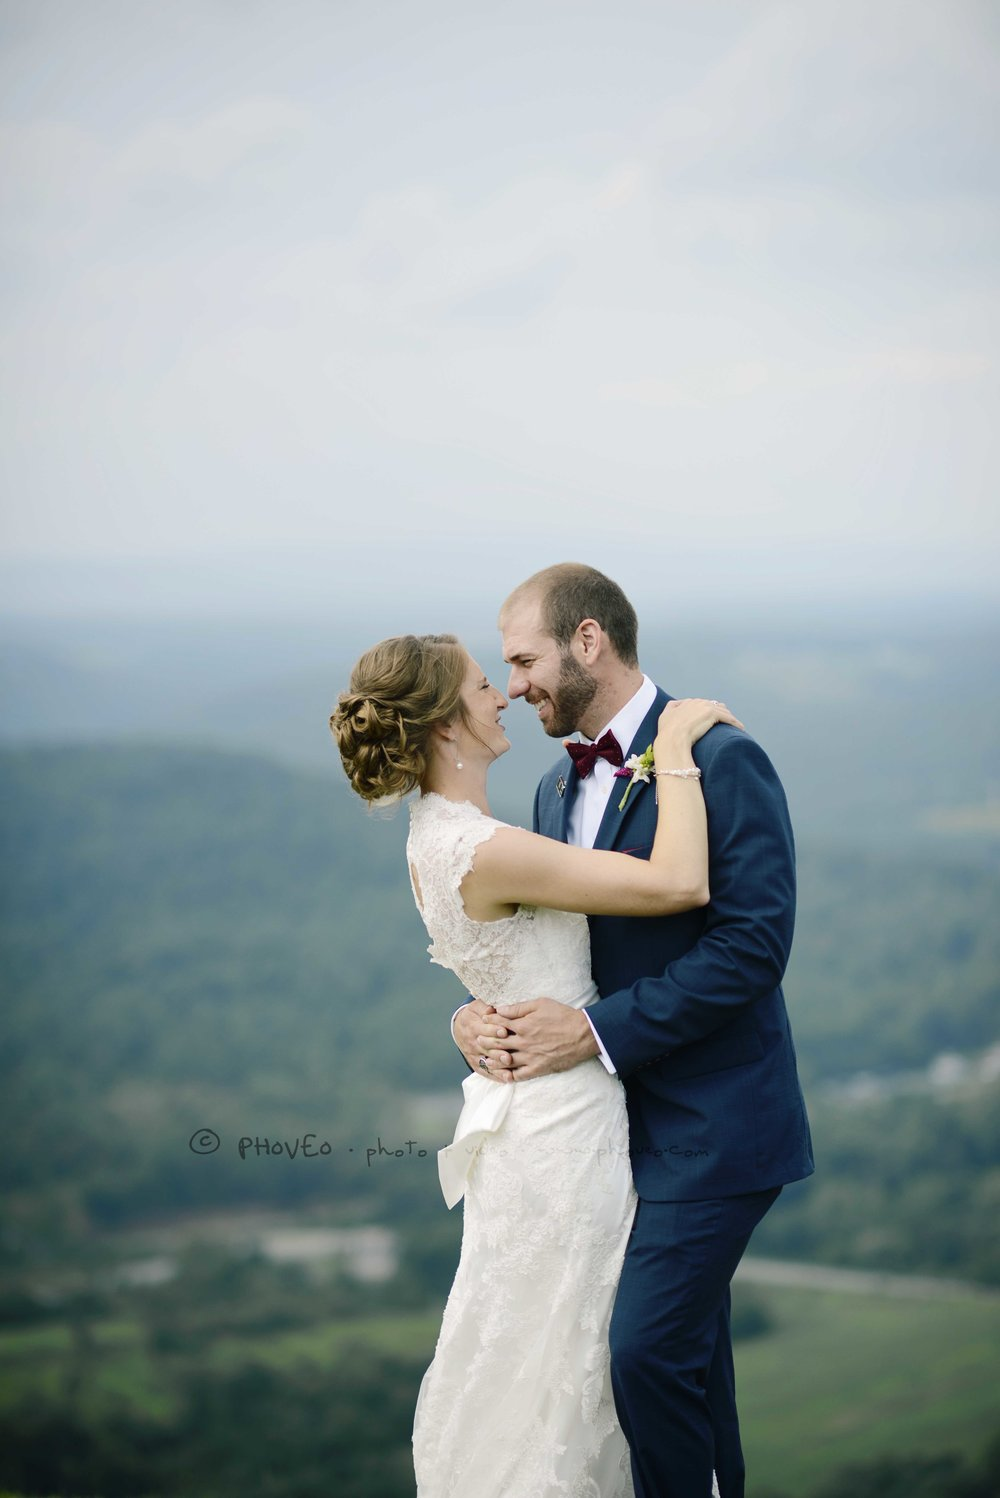 WM_20170812_Lauren+Sean_125.jpg